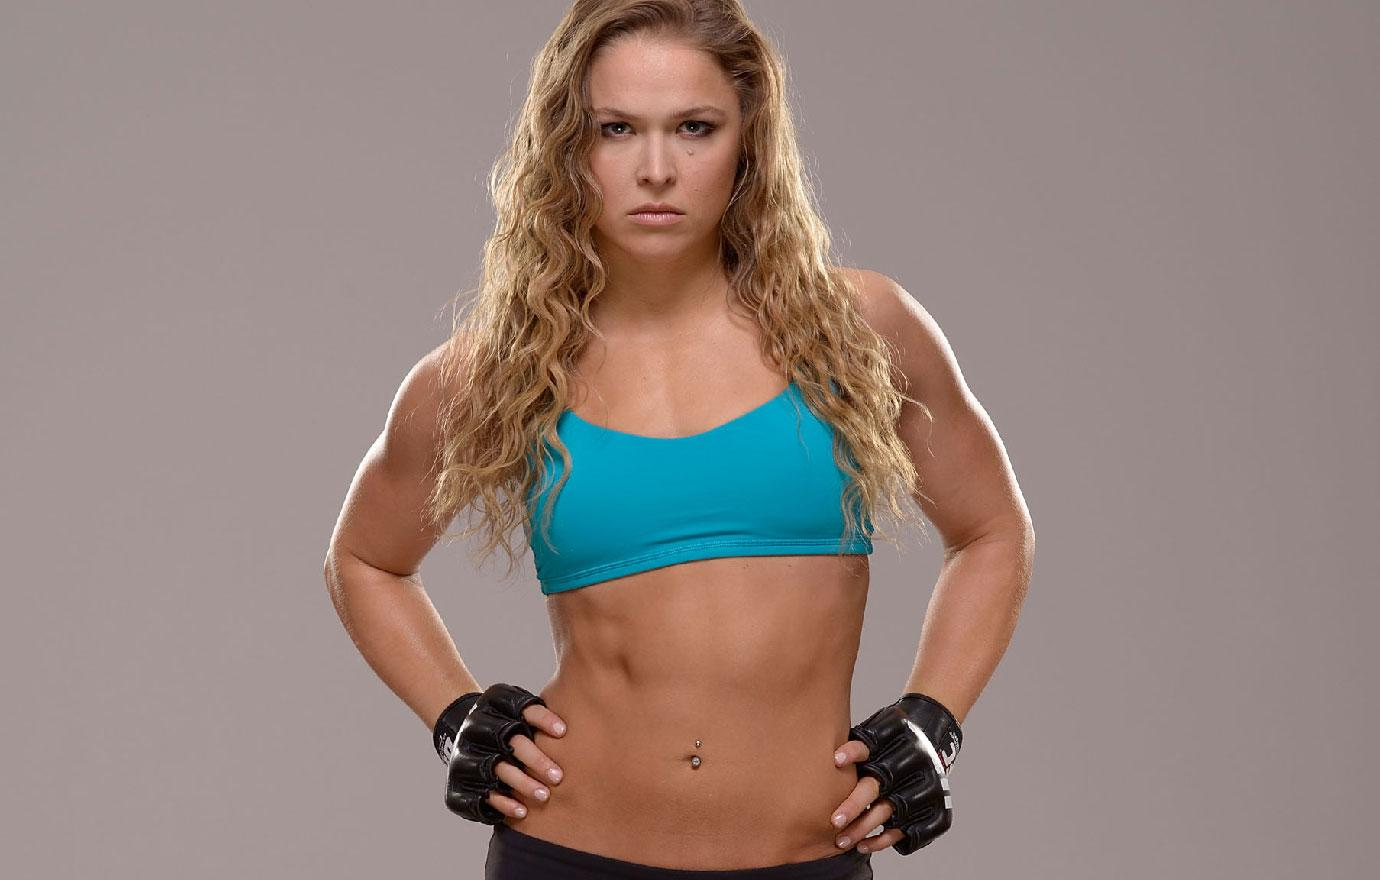 Ronda Rousey Will Wrestle For The WWE